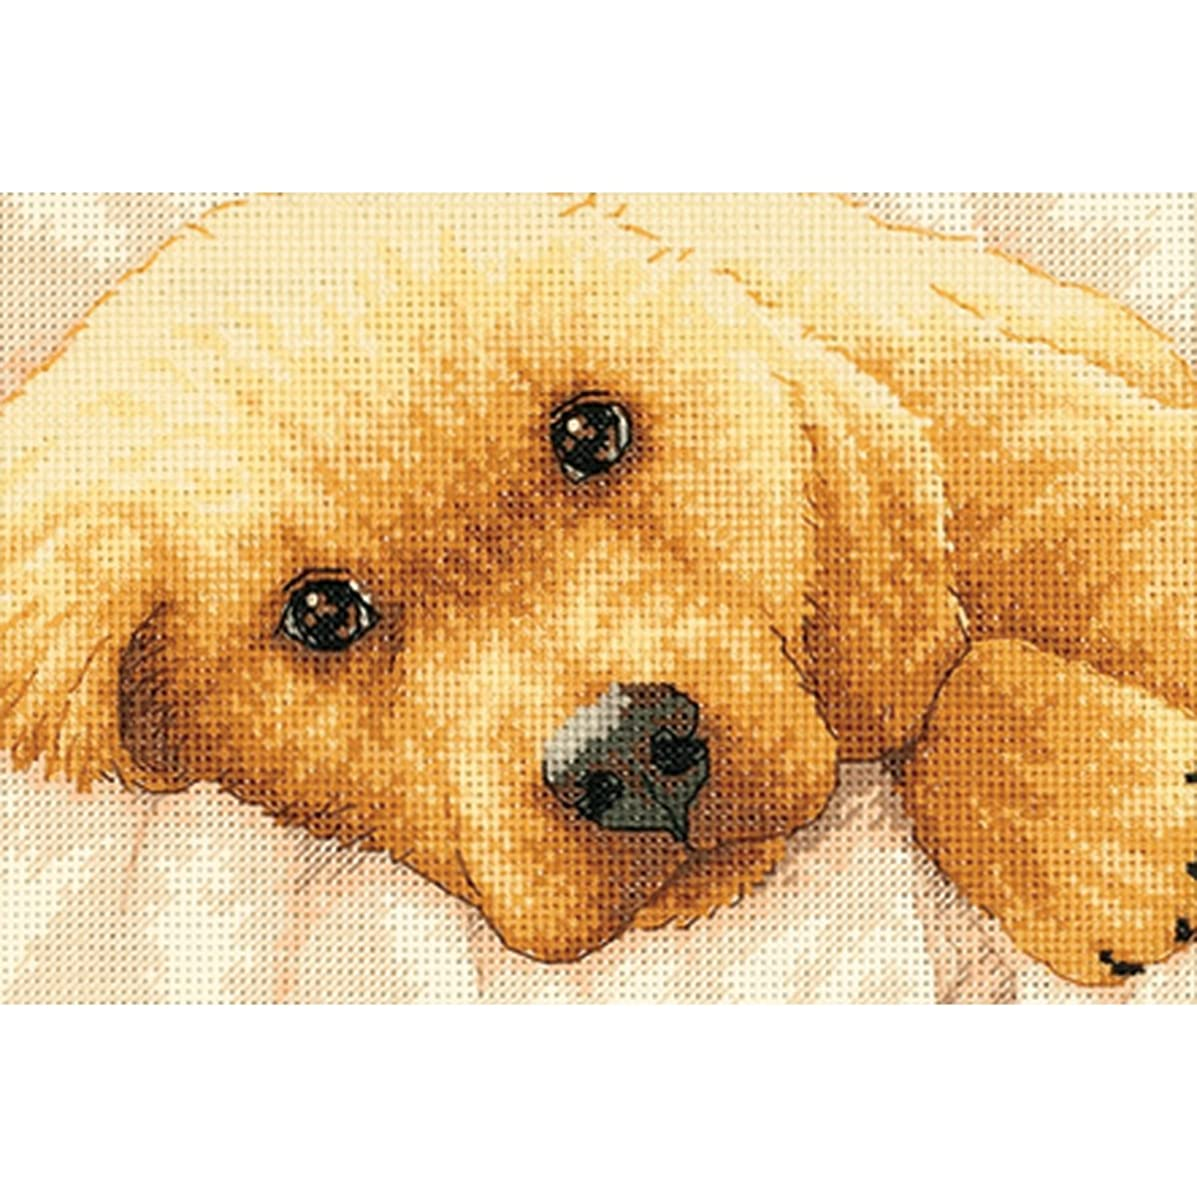 Dimensions Needlecrafts Counted Cross Stitch, Golden Puppy